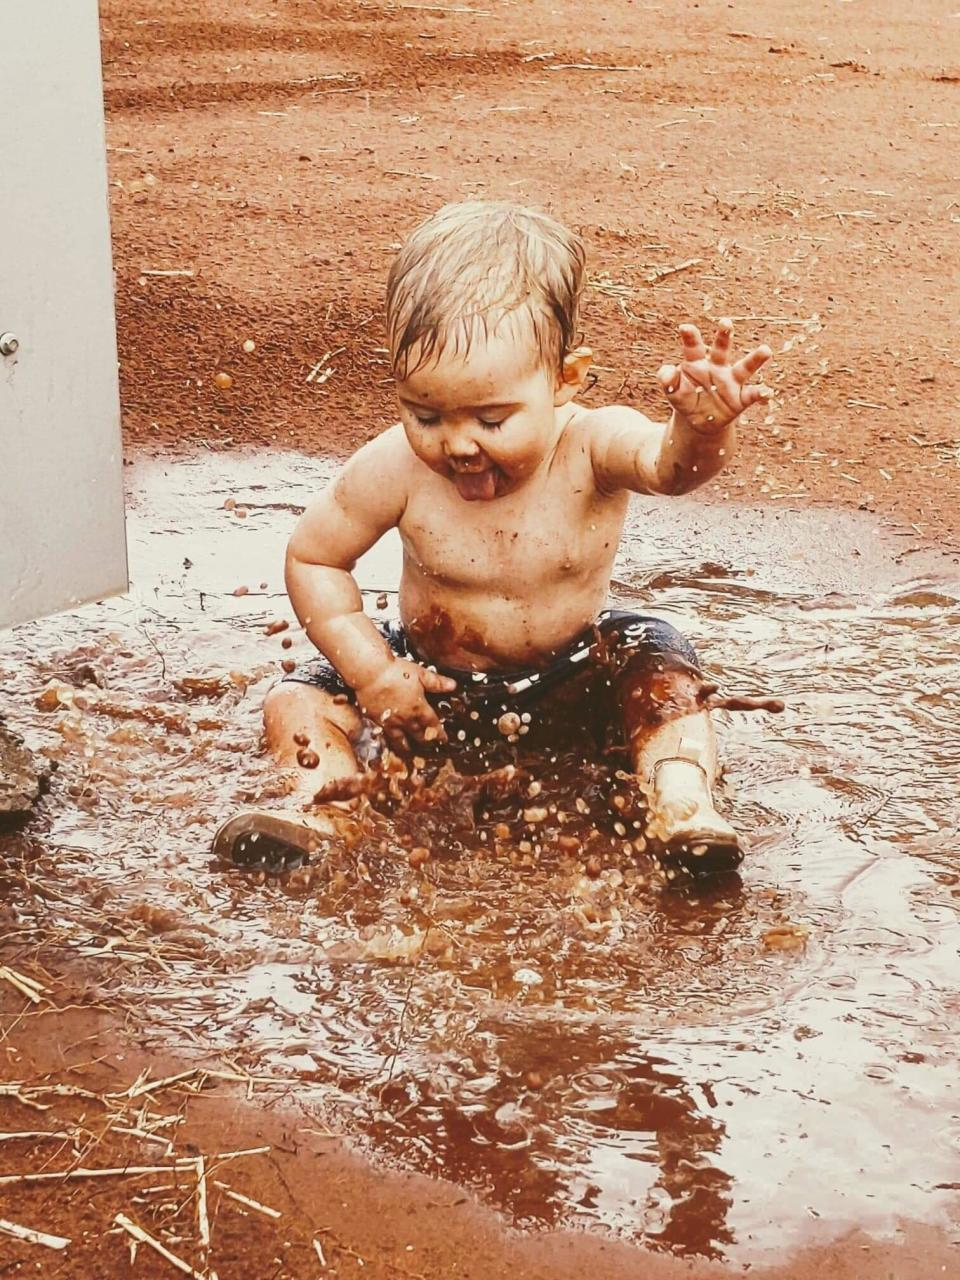 Lacey is pictured sitting in a puddle while splashing the water with her hands. Source: Emma Sewell